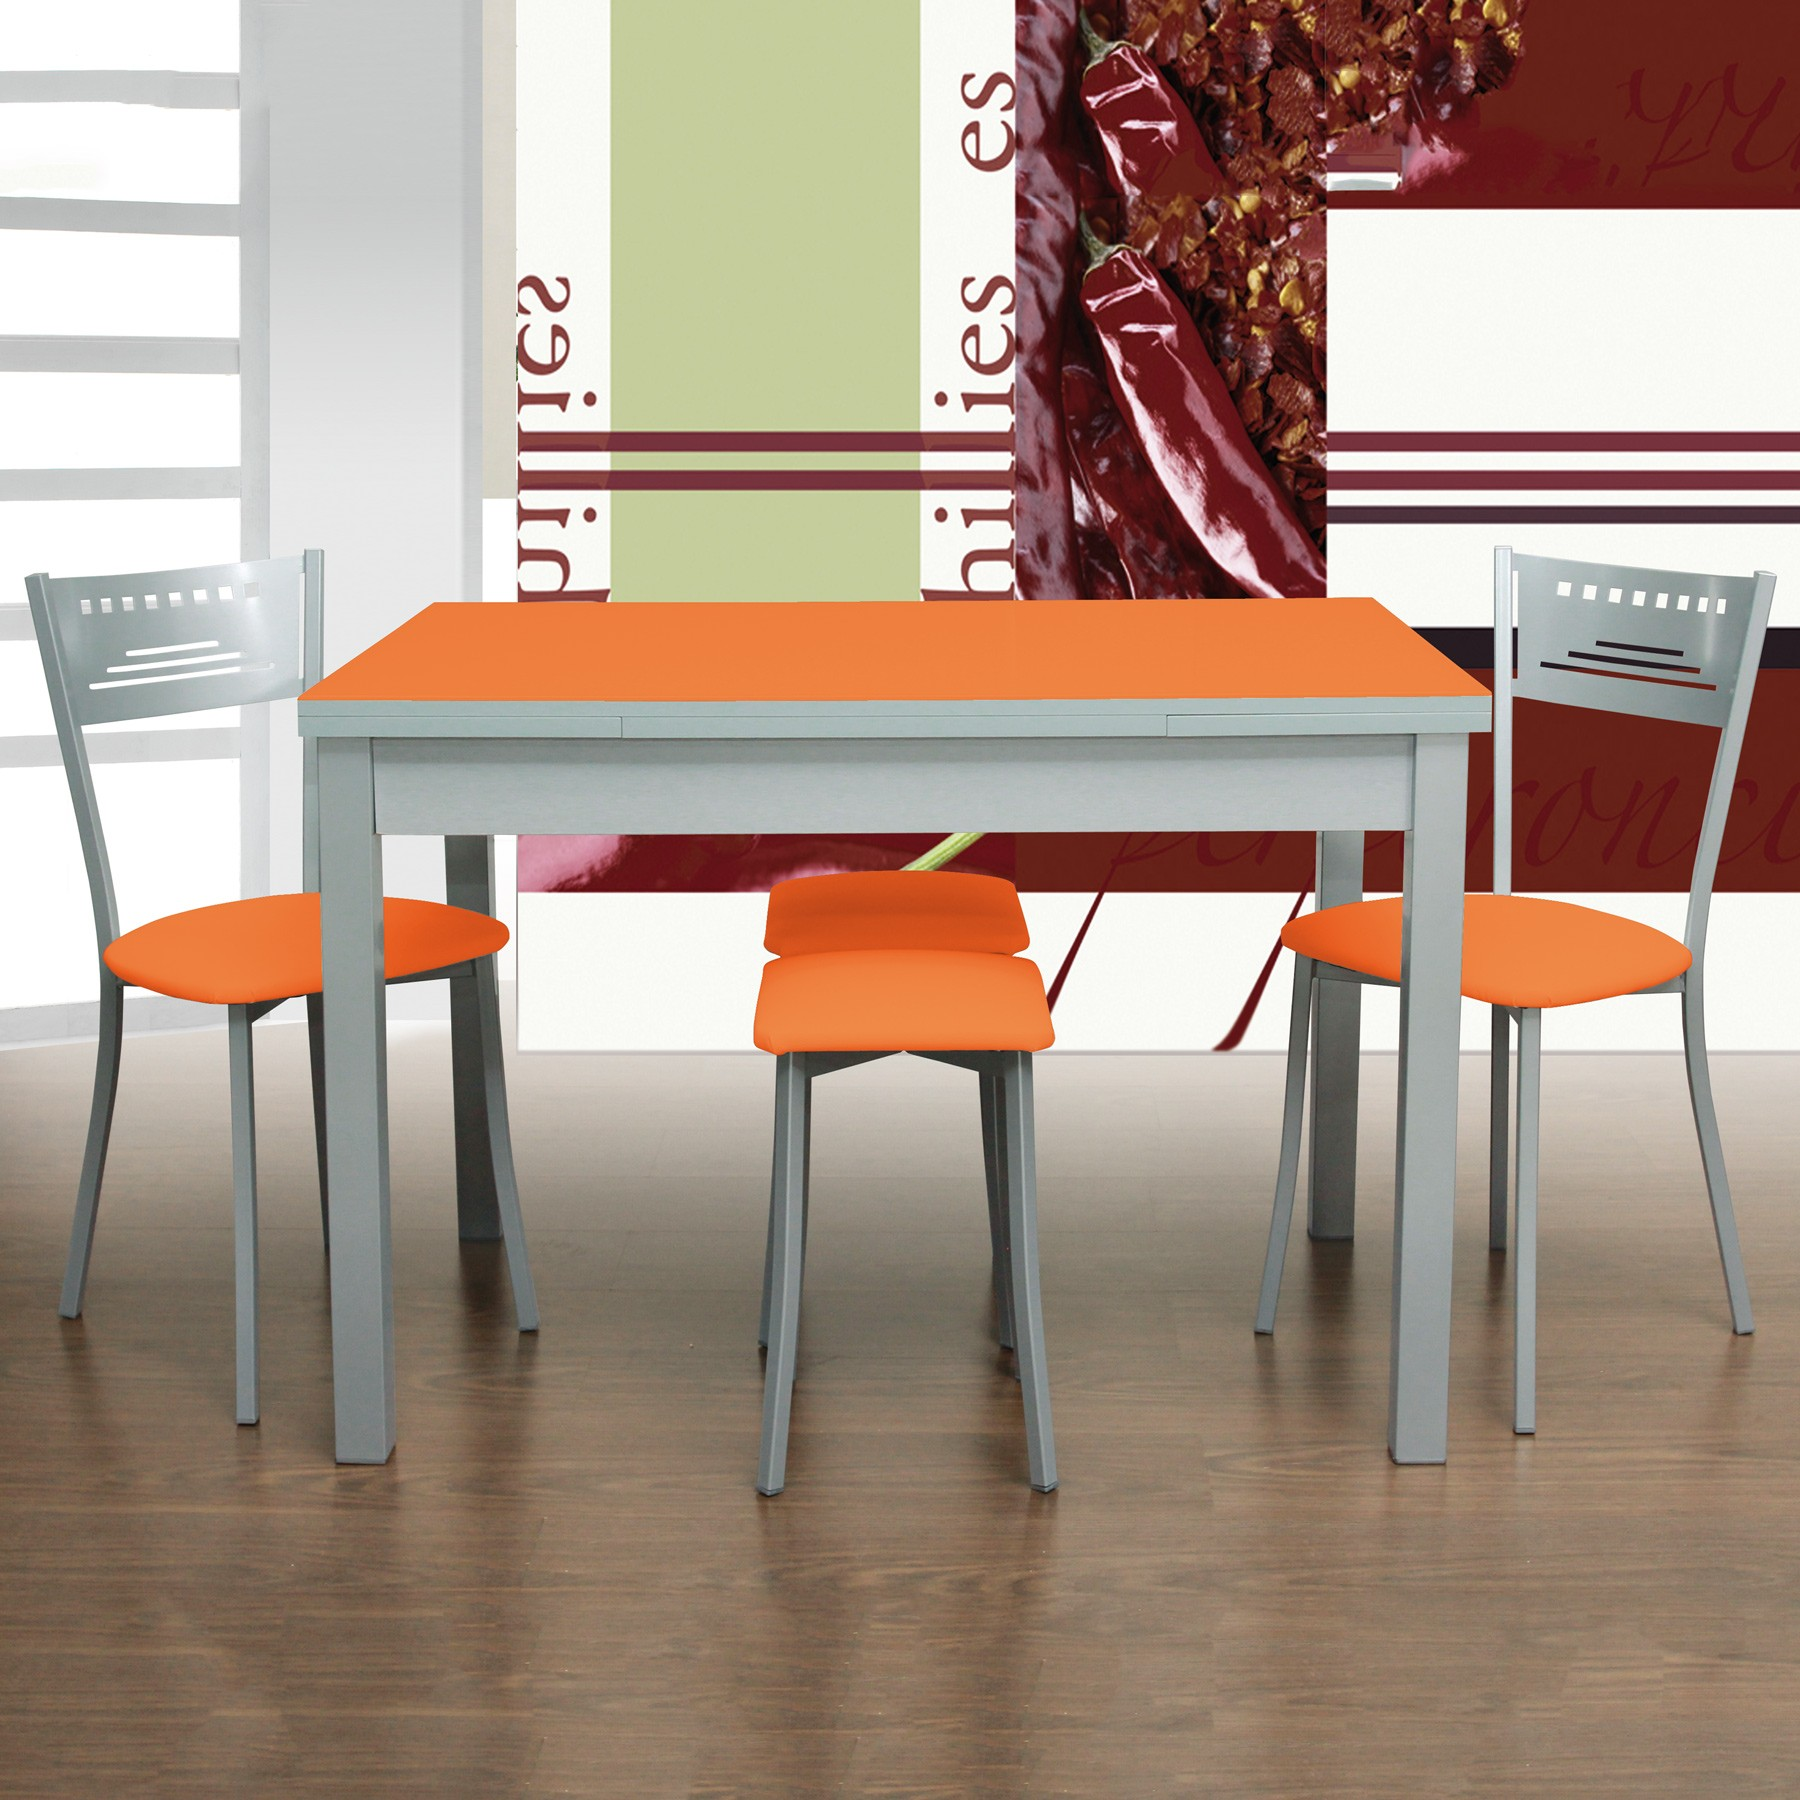 Pack mesa de cocina, sillas y/o taburetes mod. Orange